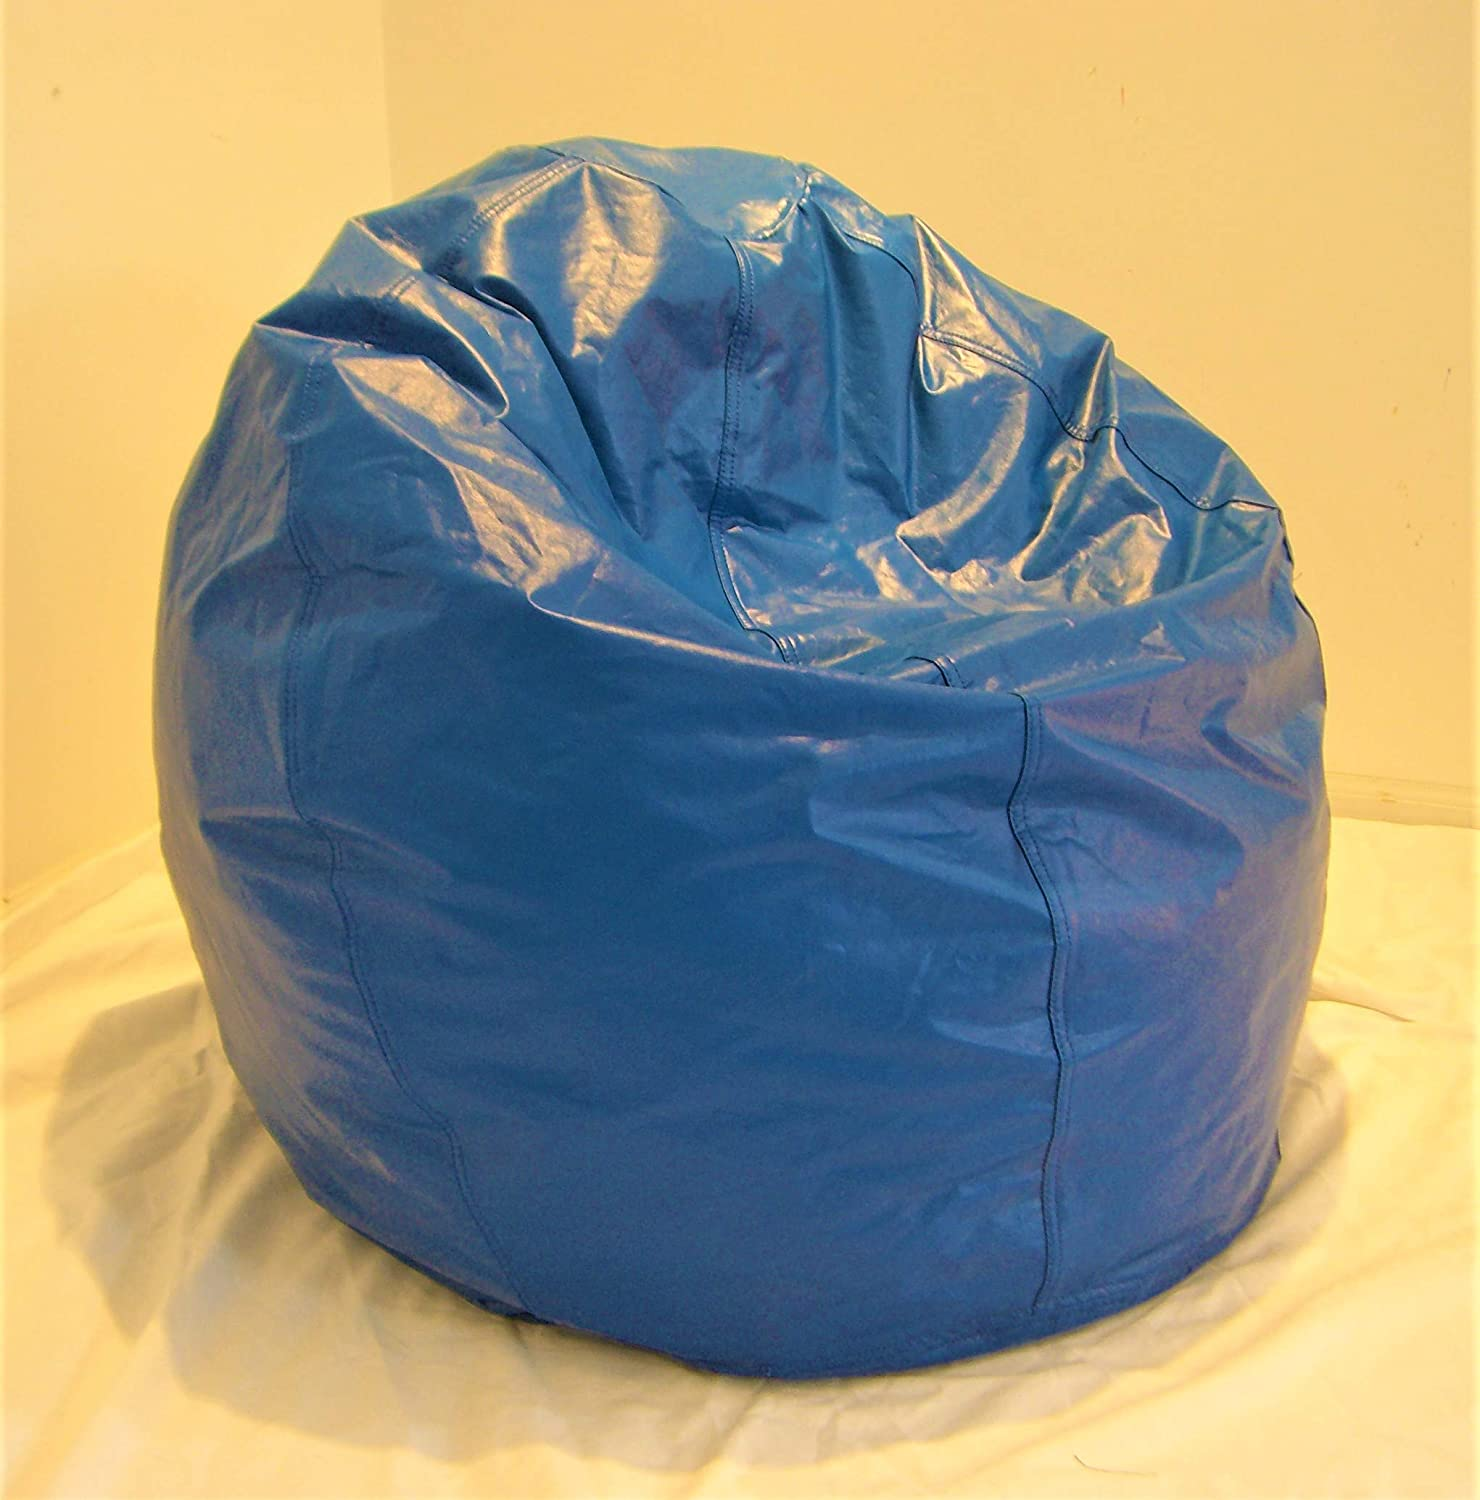 Amazon.com: Comfy Bean Beanbag Small Vinilo: Kitchen & Dining